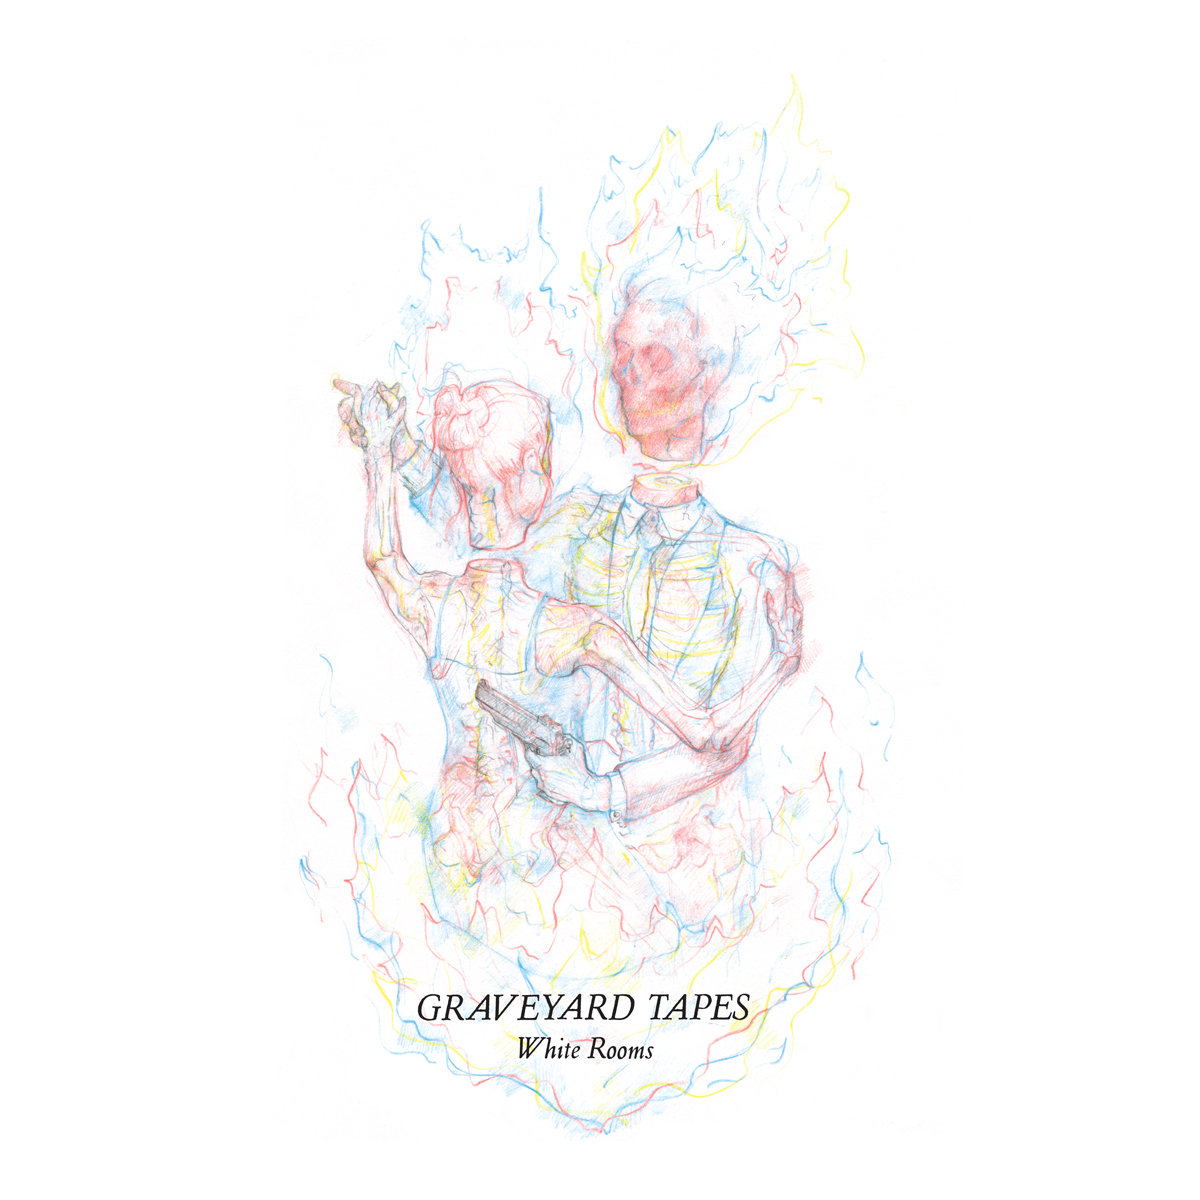 GRAVEYARD TAPES - WHITE ROOMS: Composing / Instrumentation